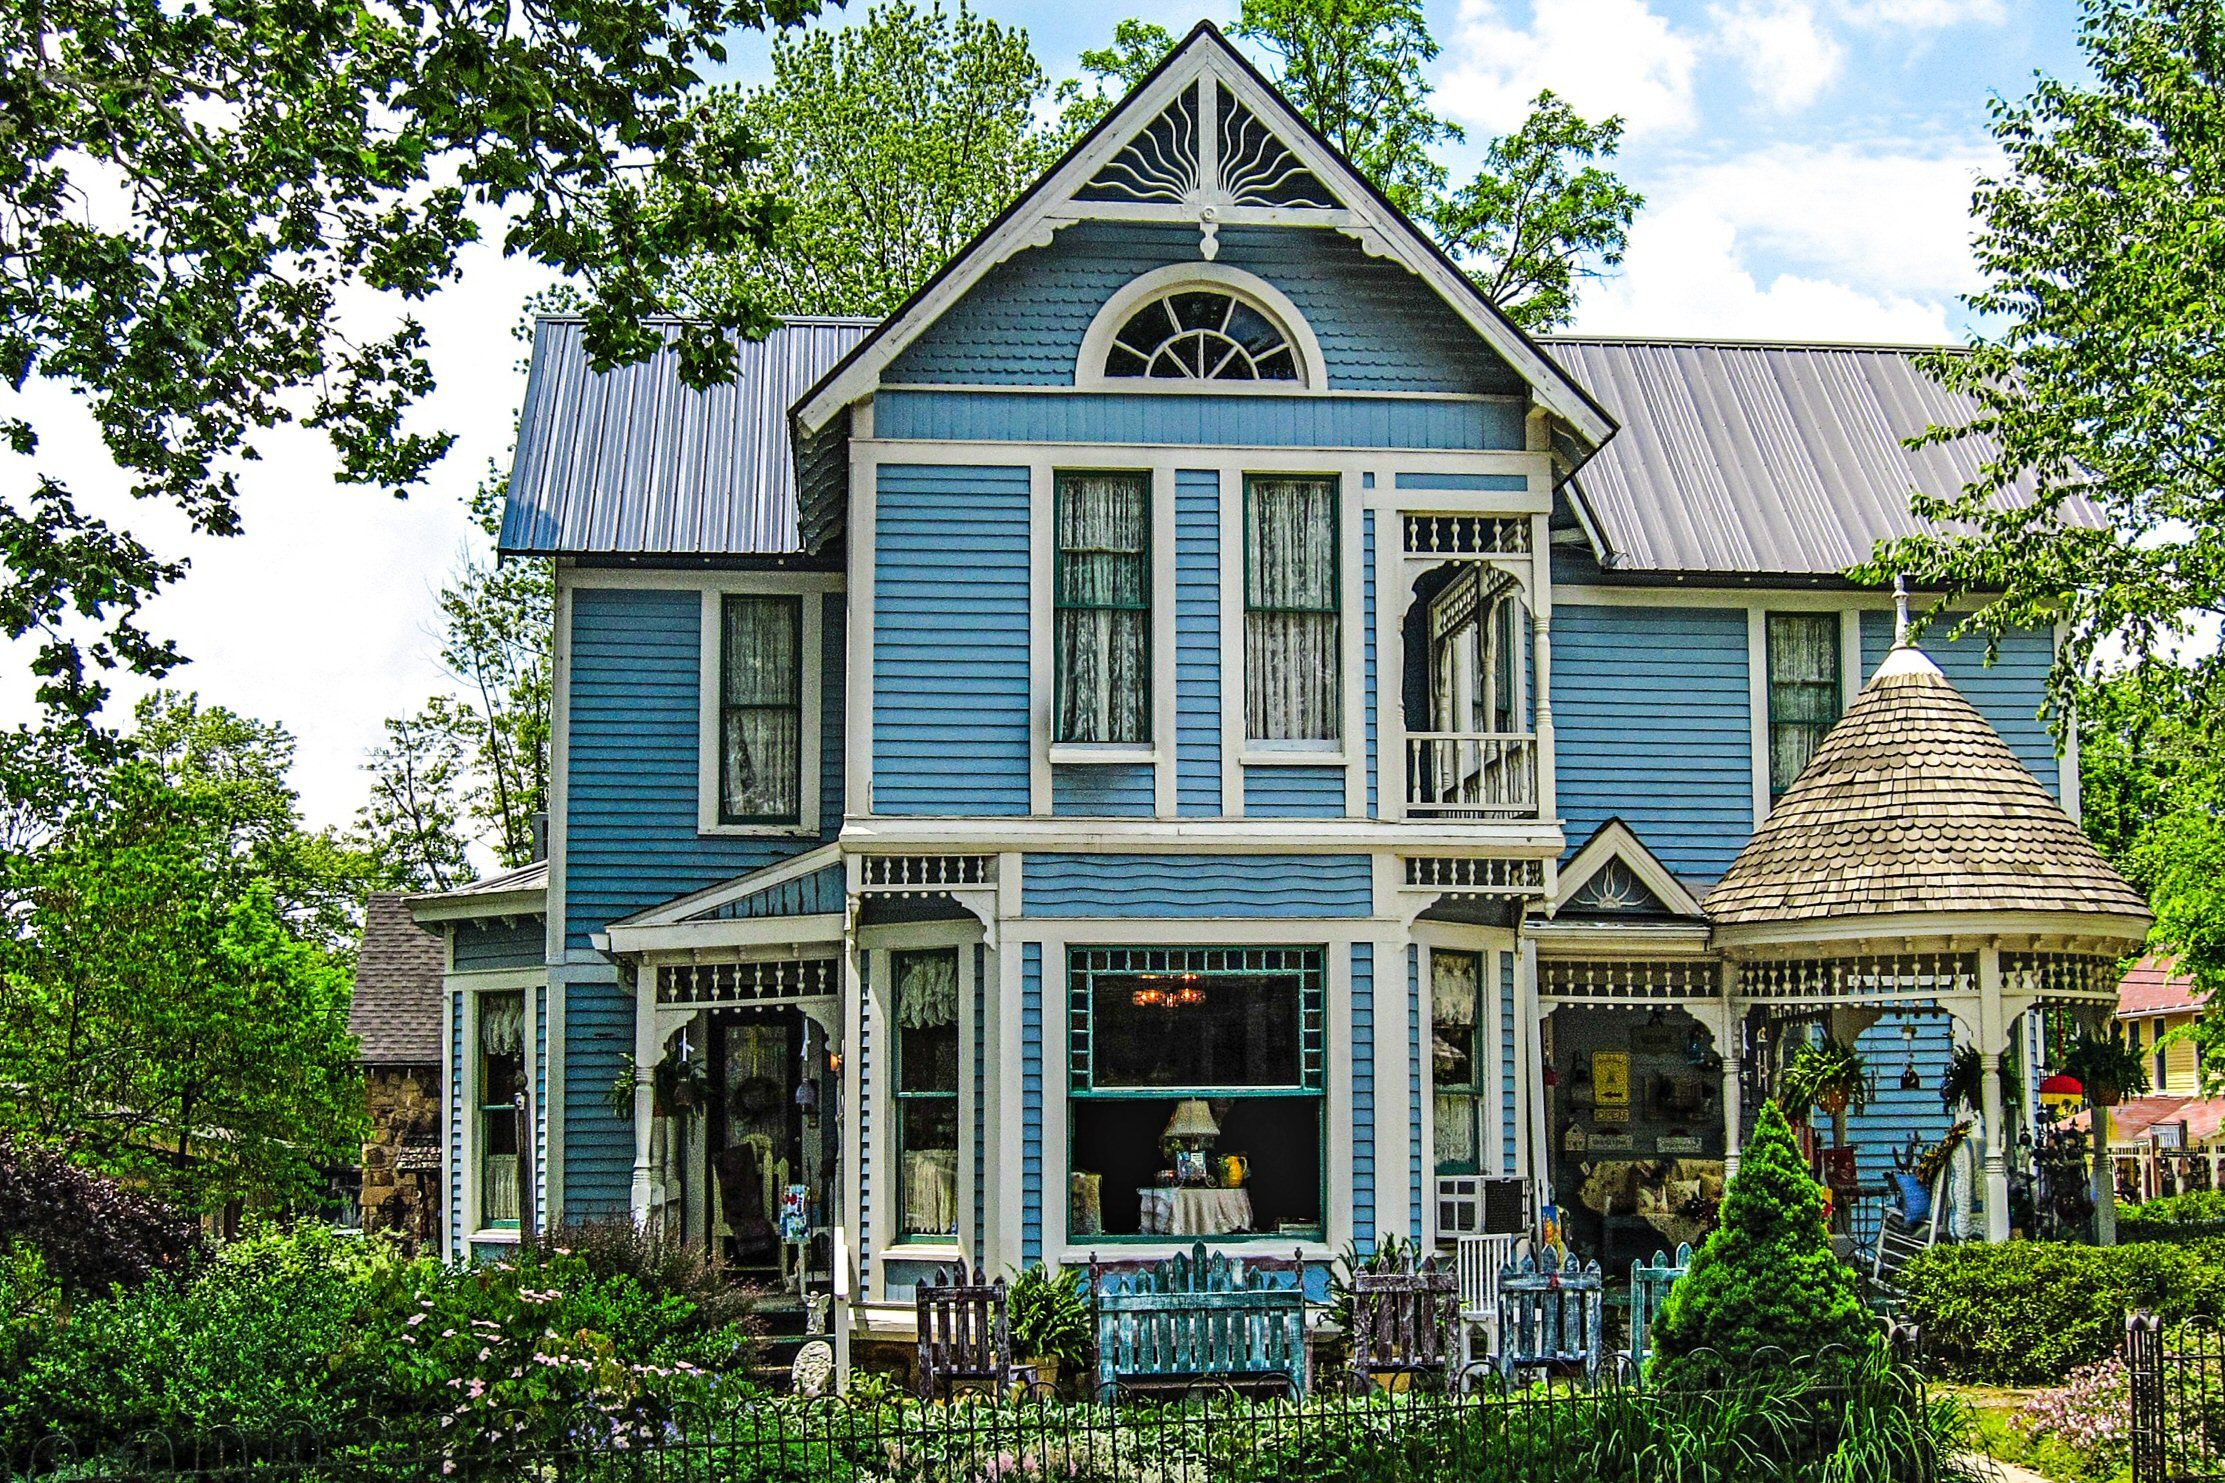 Ornate Victorian Style House Painted Bird S Egg Blue With White Trim And Dark Metal Roof